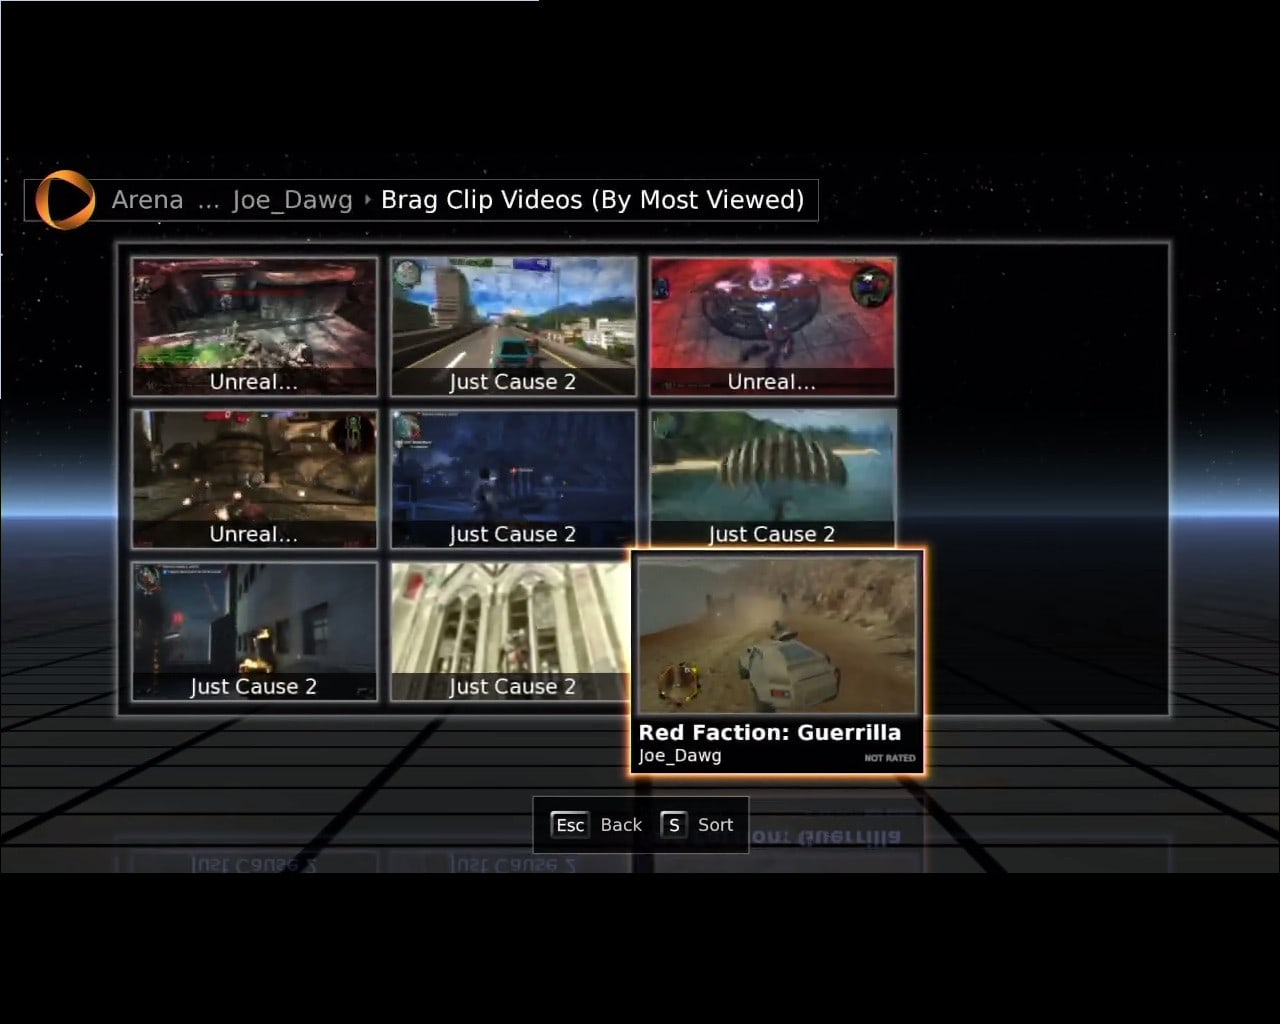 http games onlive com download Games iphone